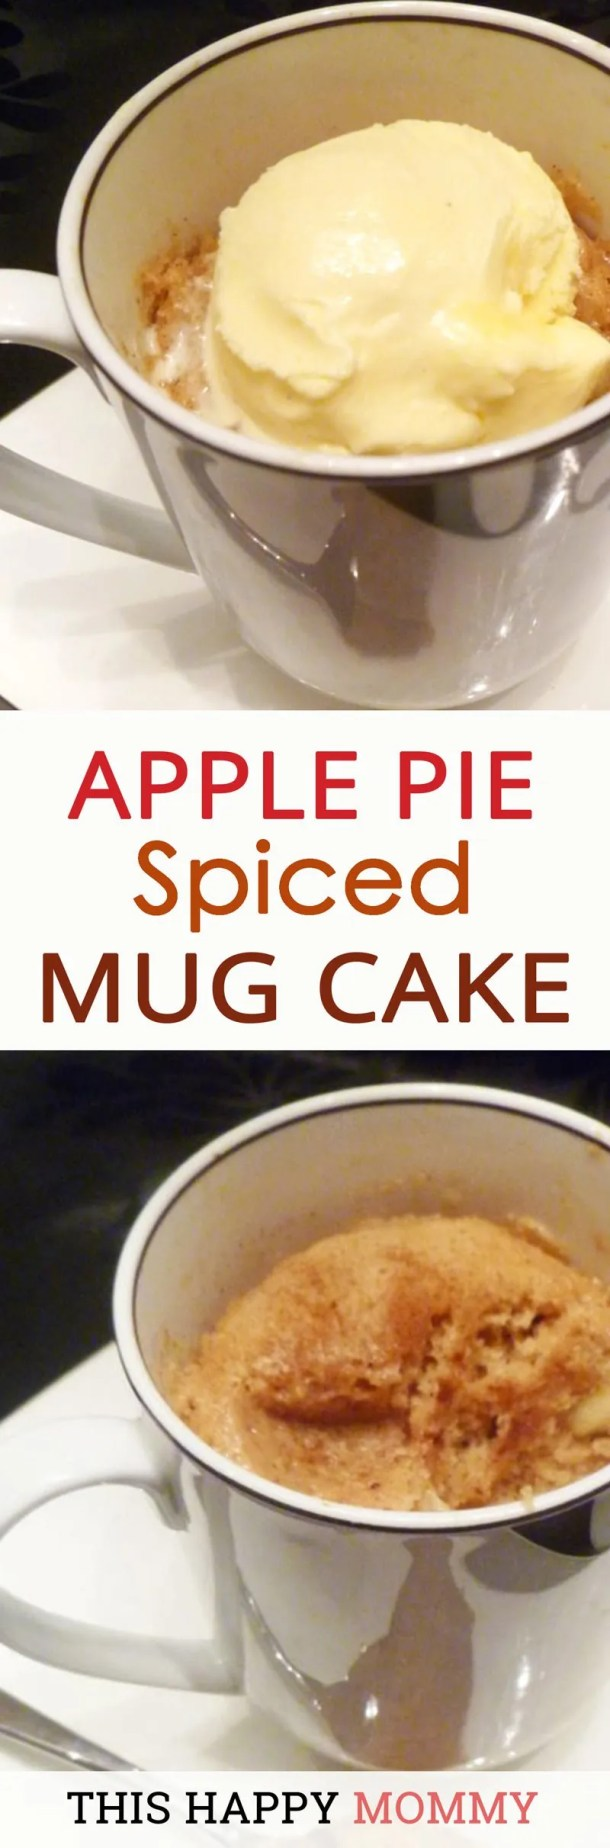 You will love this easy pie dessert cake! A perfectly spongy cake filled with all the flavors of baked apple pie. Apple Pie Spiced Mug Cake is a tasty single-serving cake that's ready in less than 5 minutes. Quick and Easy Dessert | 5 minute Microwave Cake | thishappymommy.com